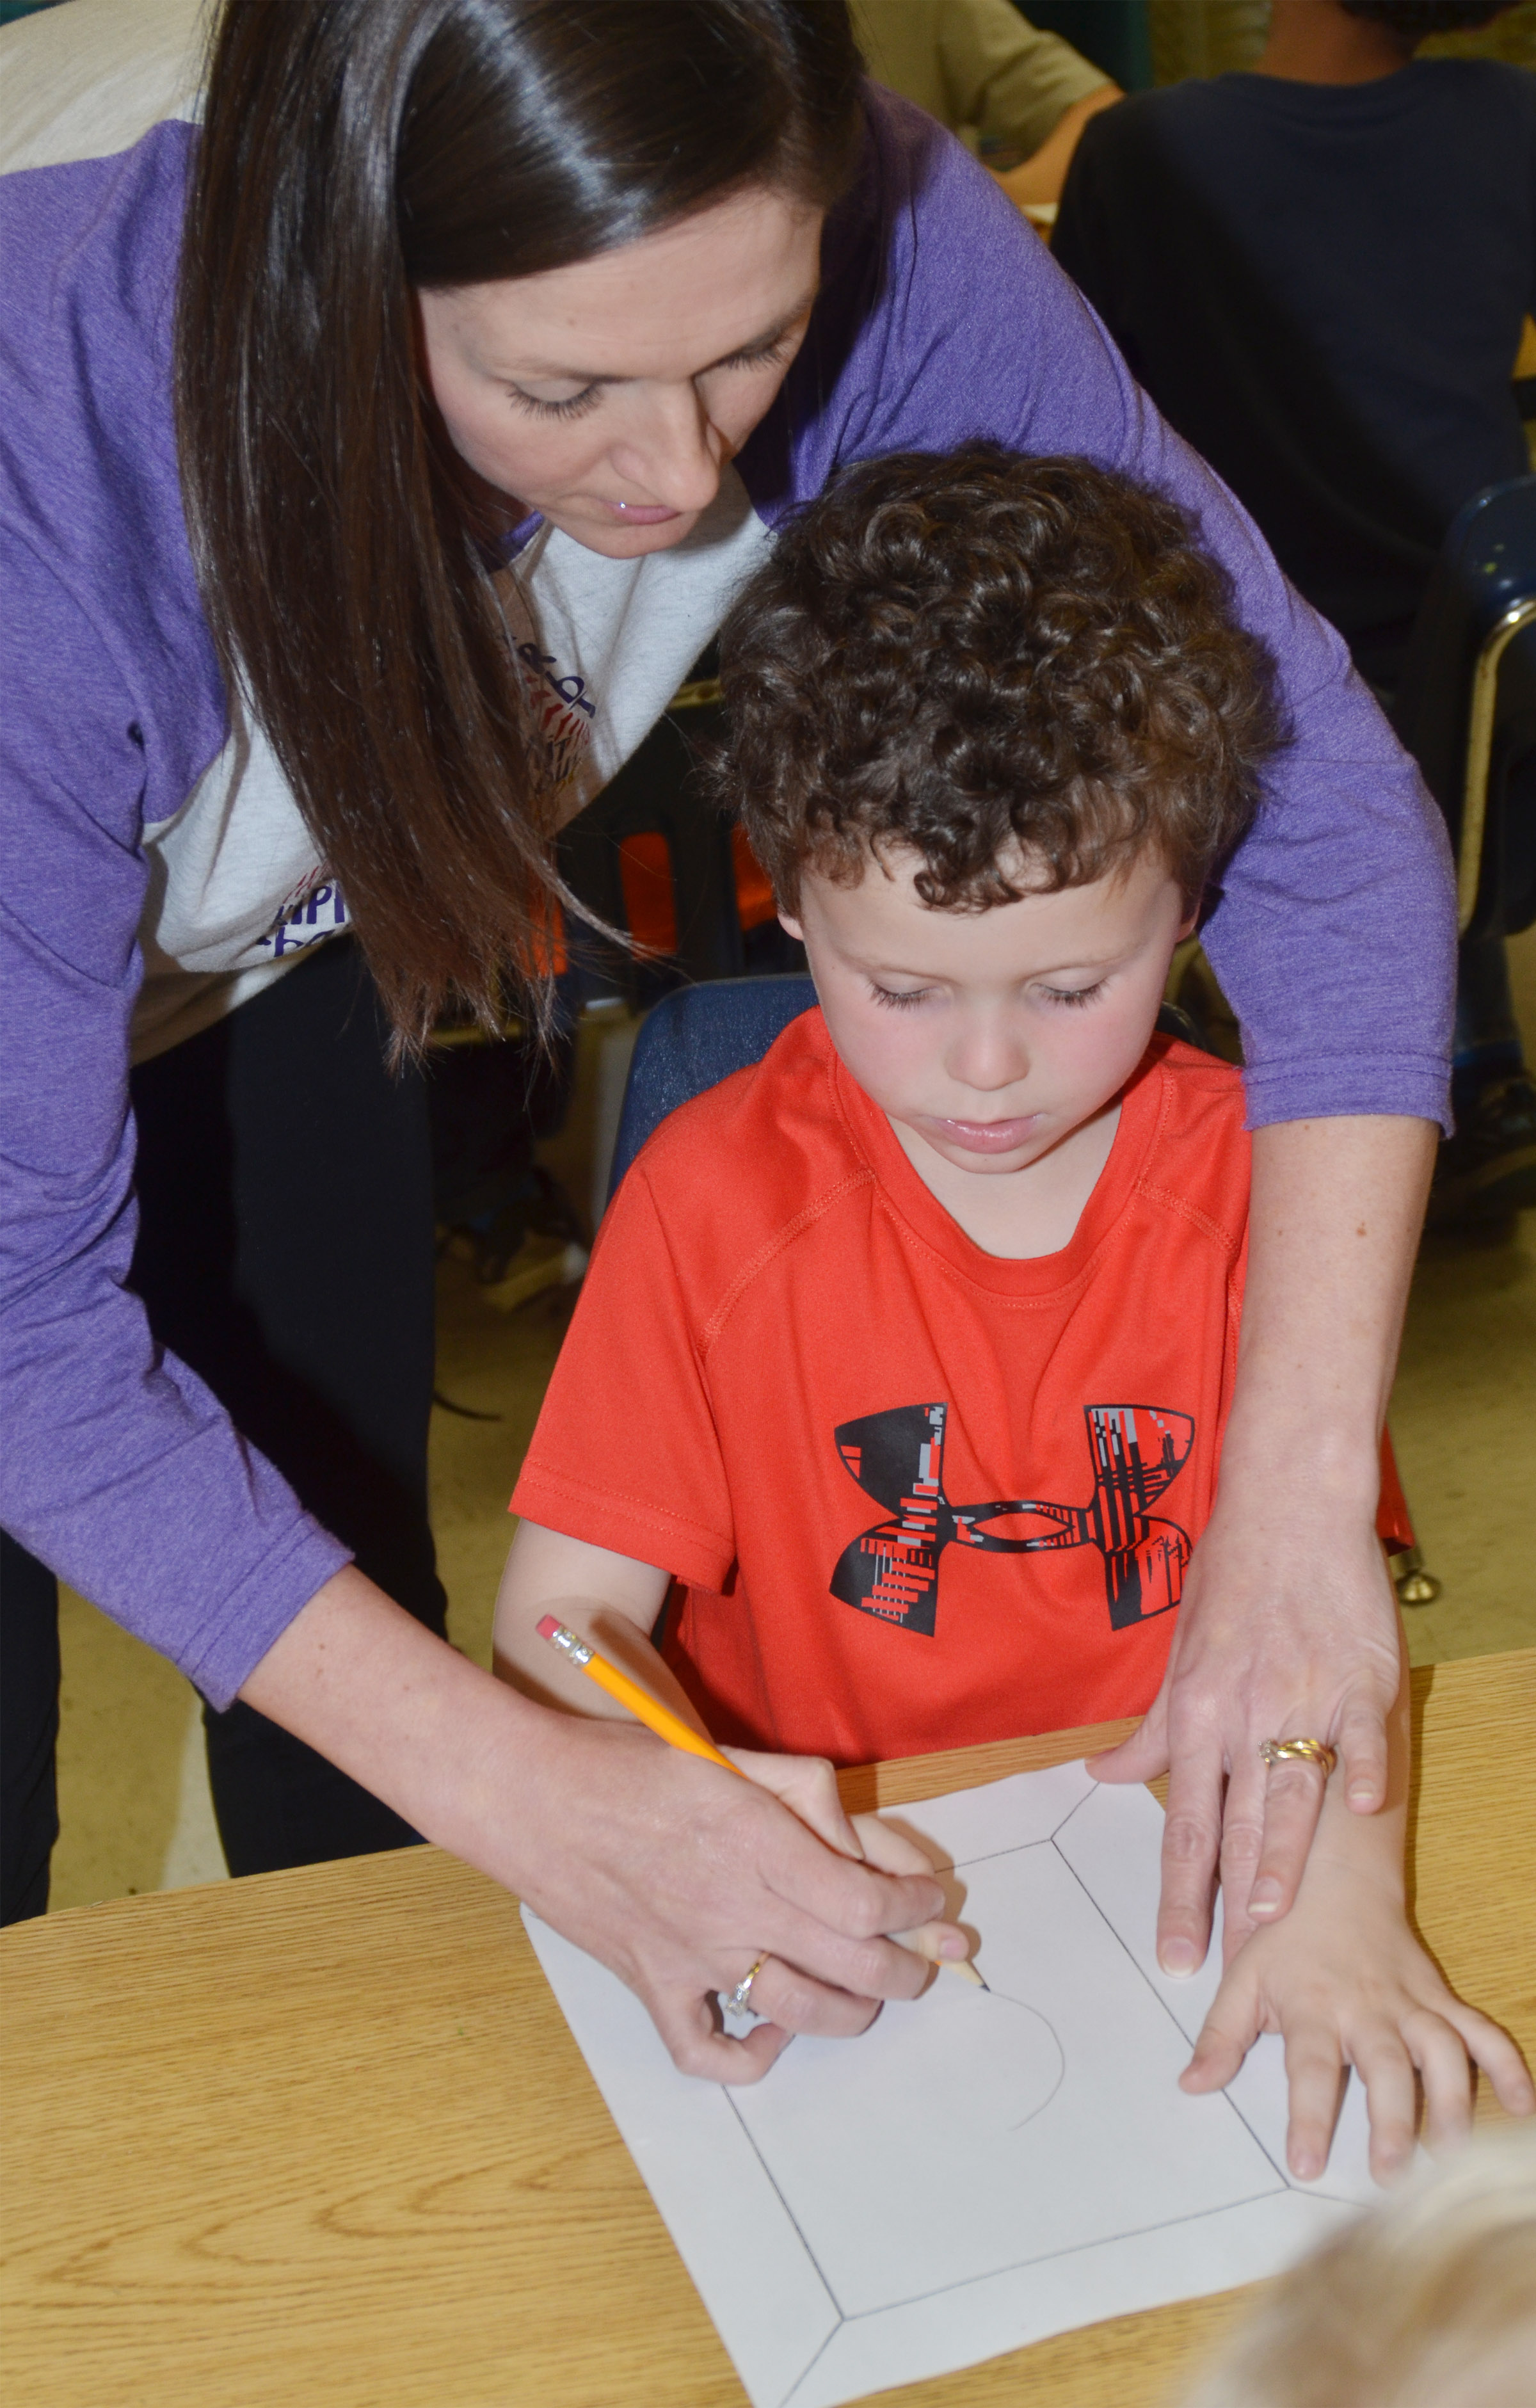 CES art teacher Adrienne Hash helps kindergartener Braydan Dyer draw his self-portrait.